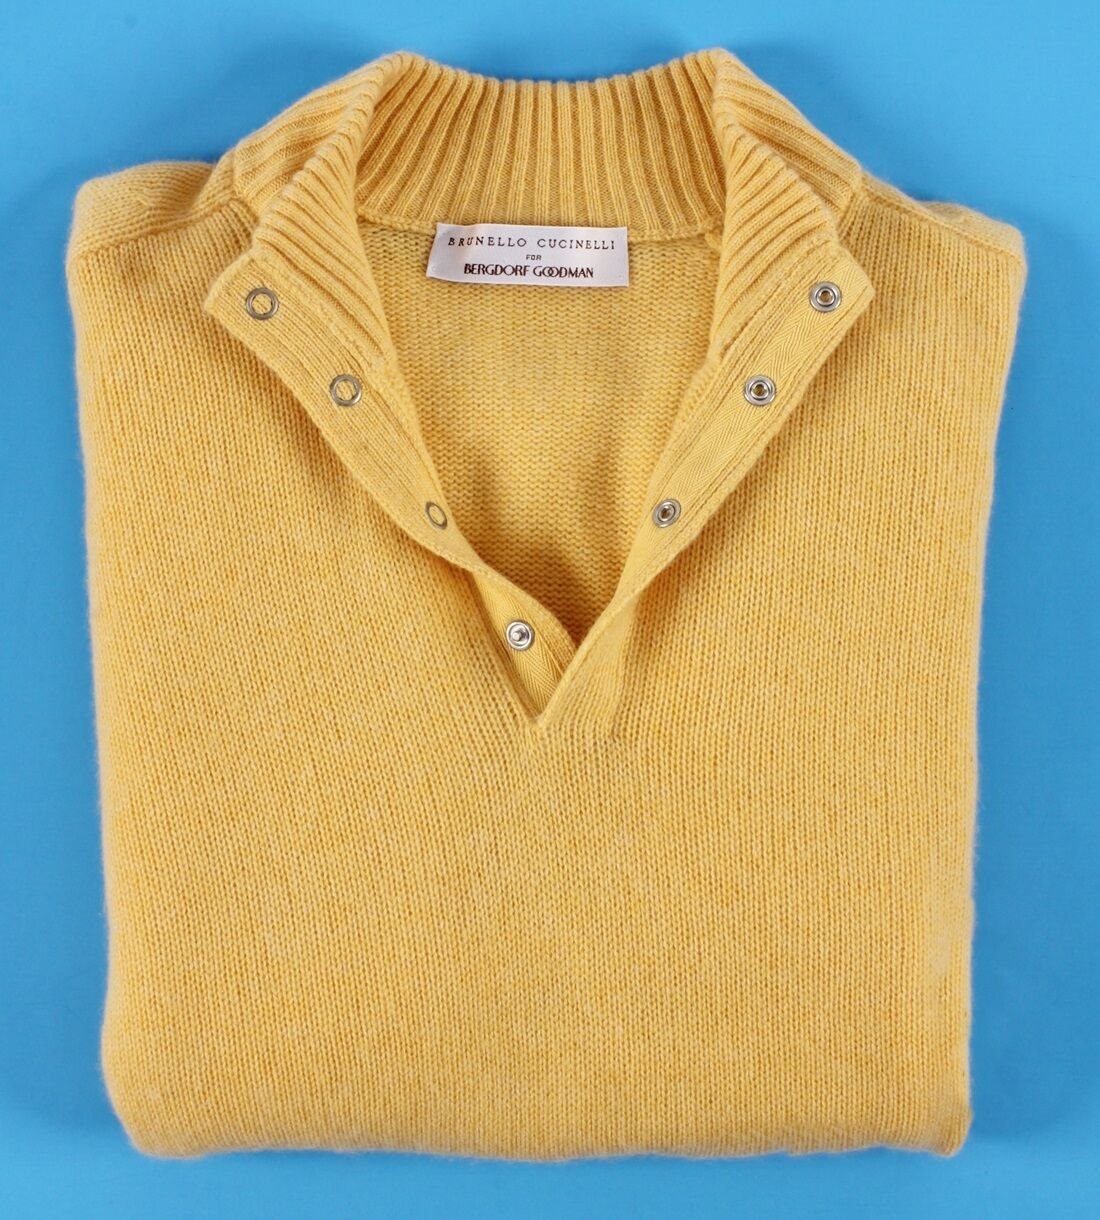 BRUNELLO CUCINELLI Front 100% CASHMERE Snap Front CUCINELLI Sweater - giallo 54 Large 77c528